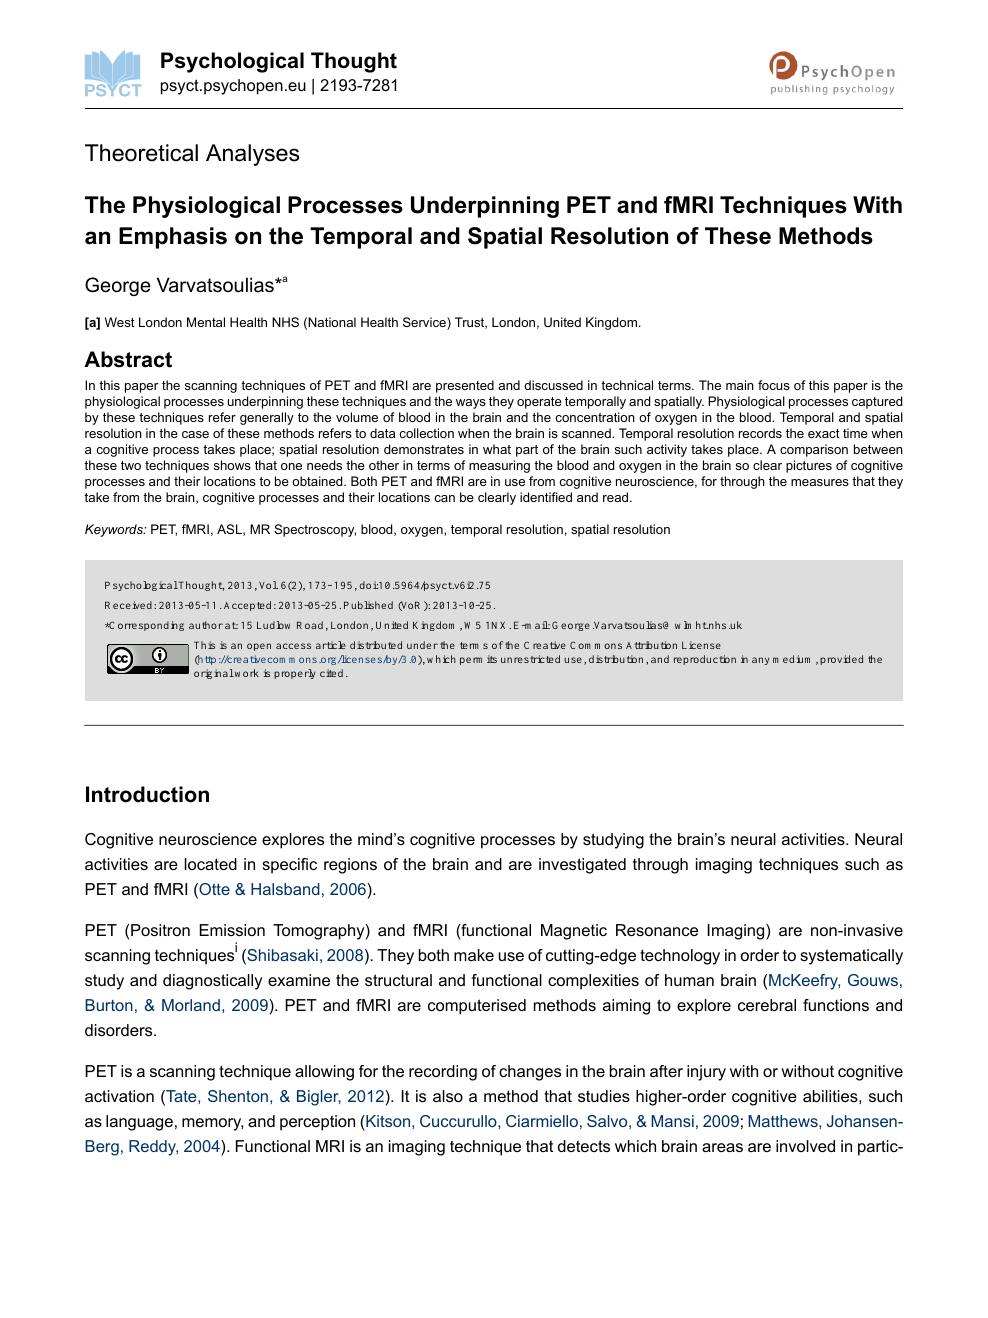 The Physiological Processes Underpinning PET and fMRI